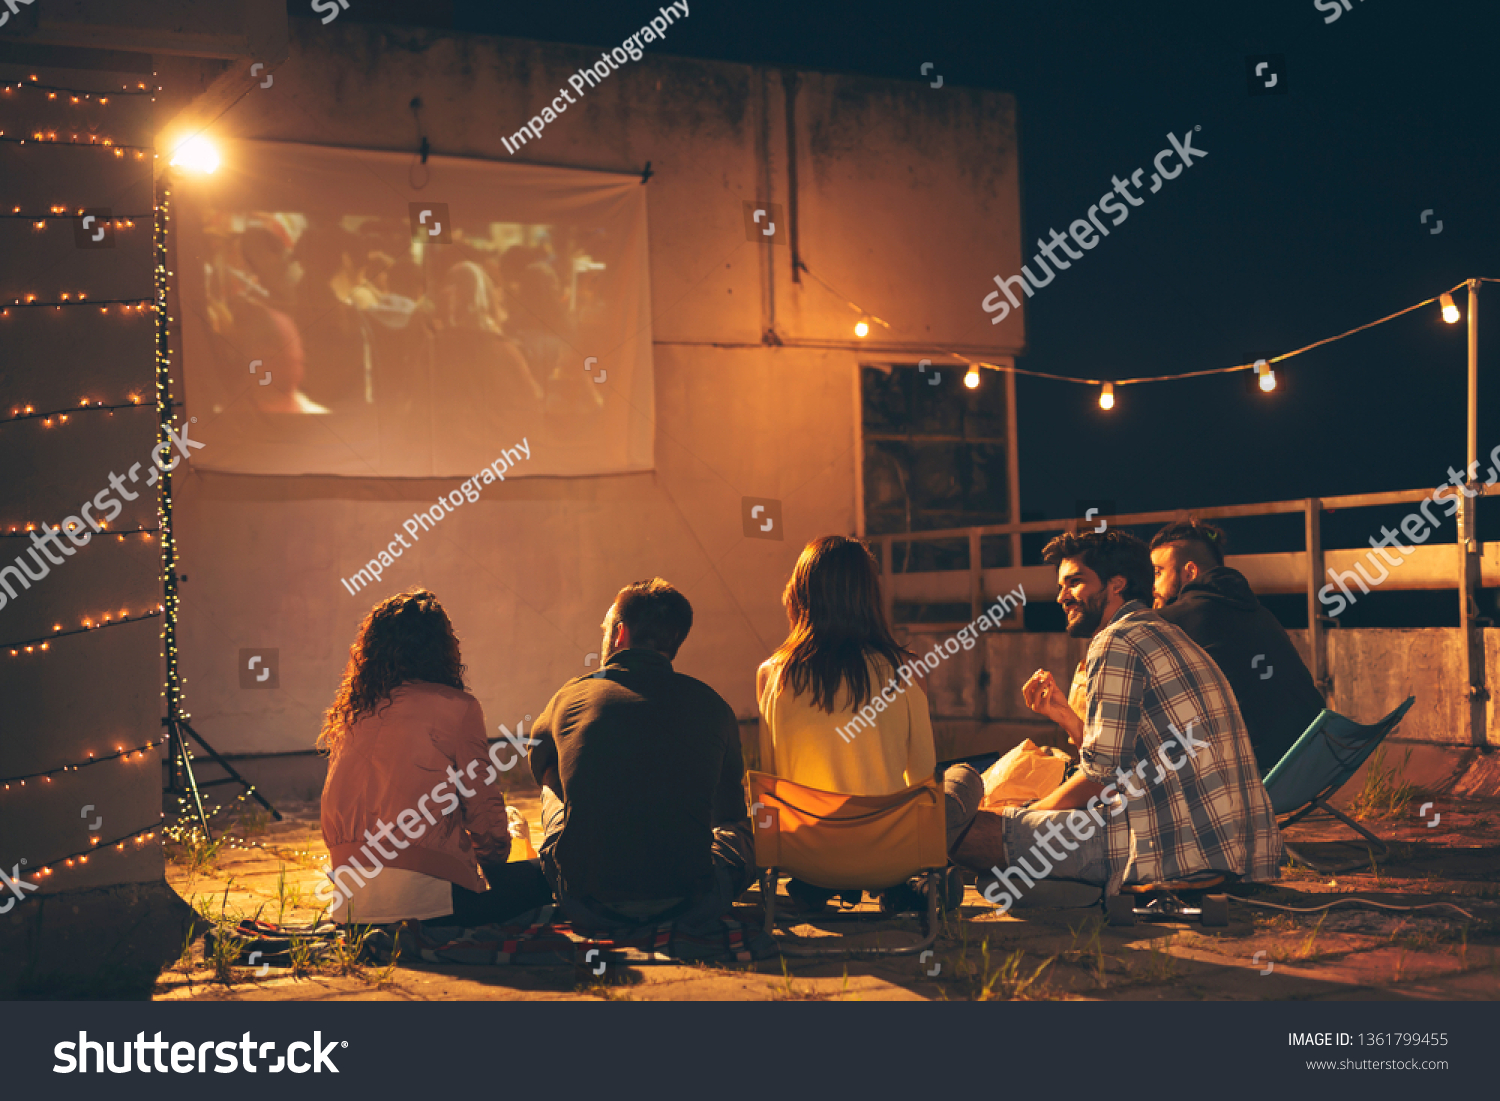 Group of young friends watching a movie on a building rooftop terrace, eating popcorn, drinking beer and having fun #1361799455